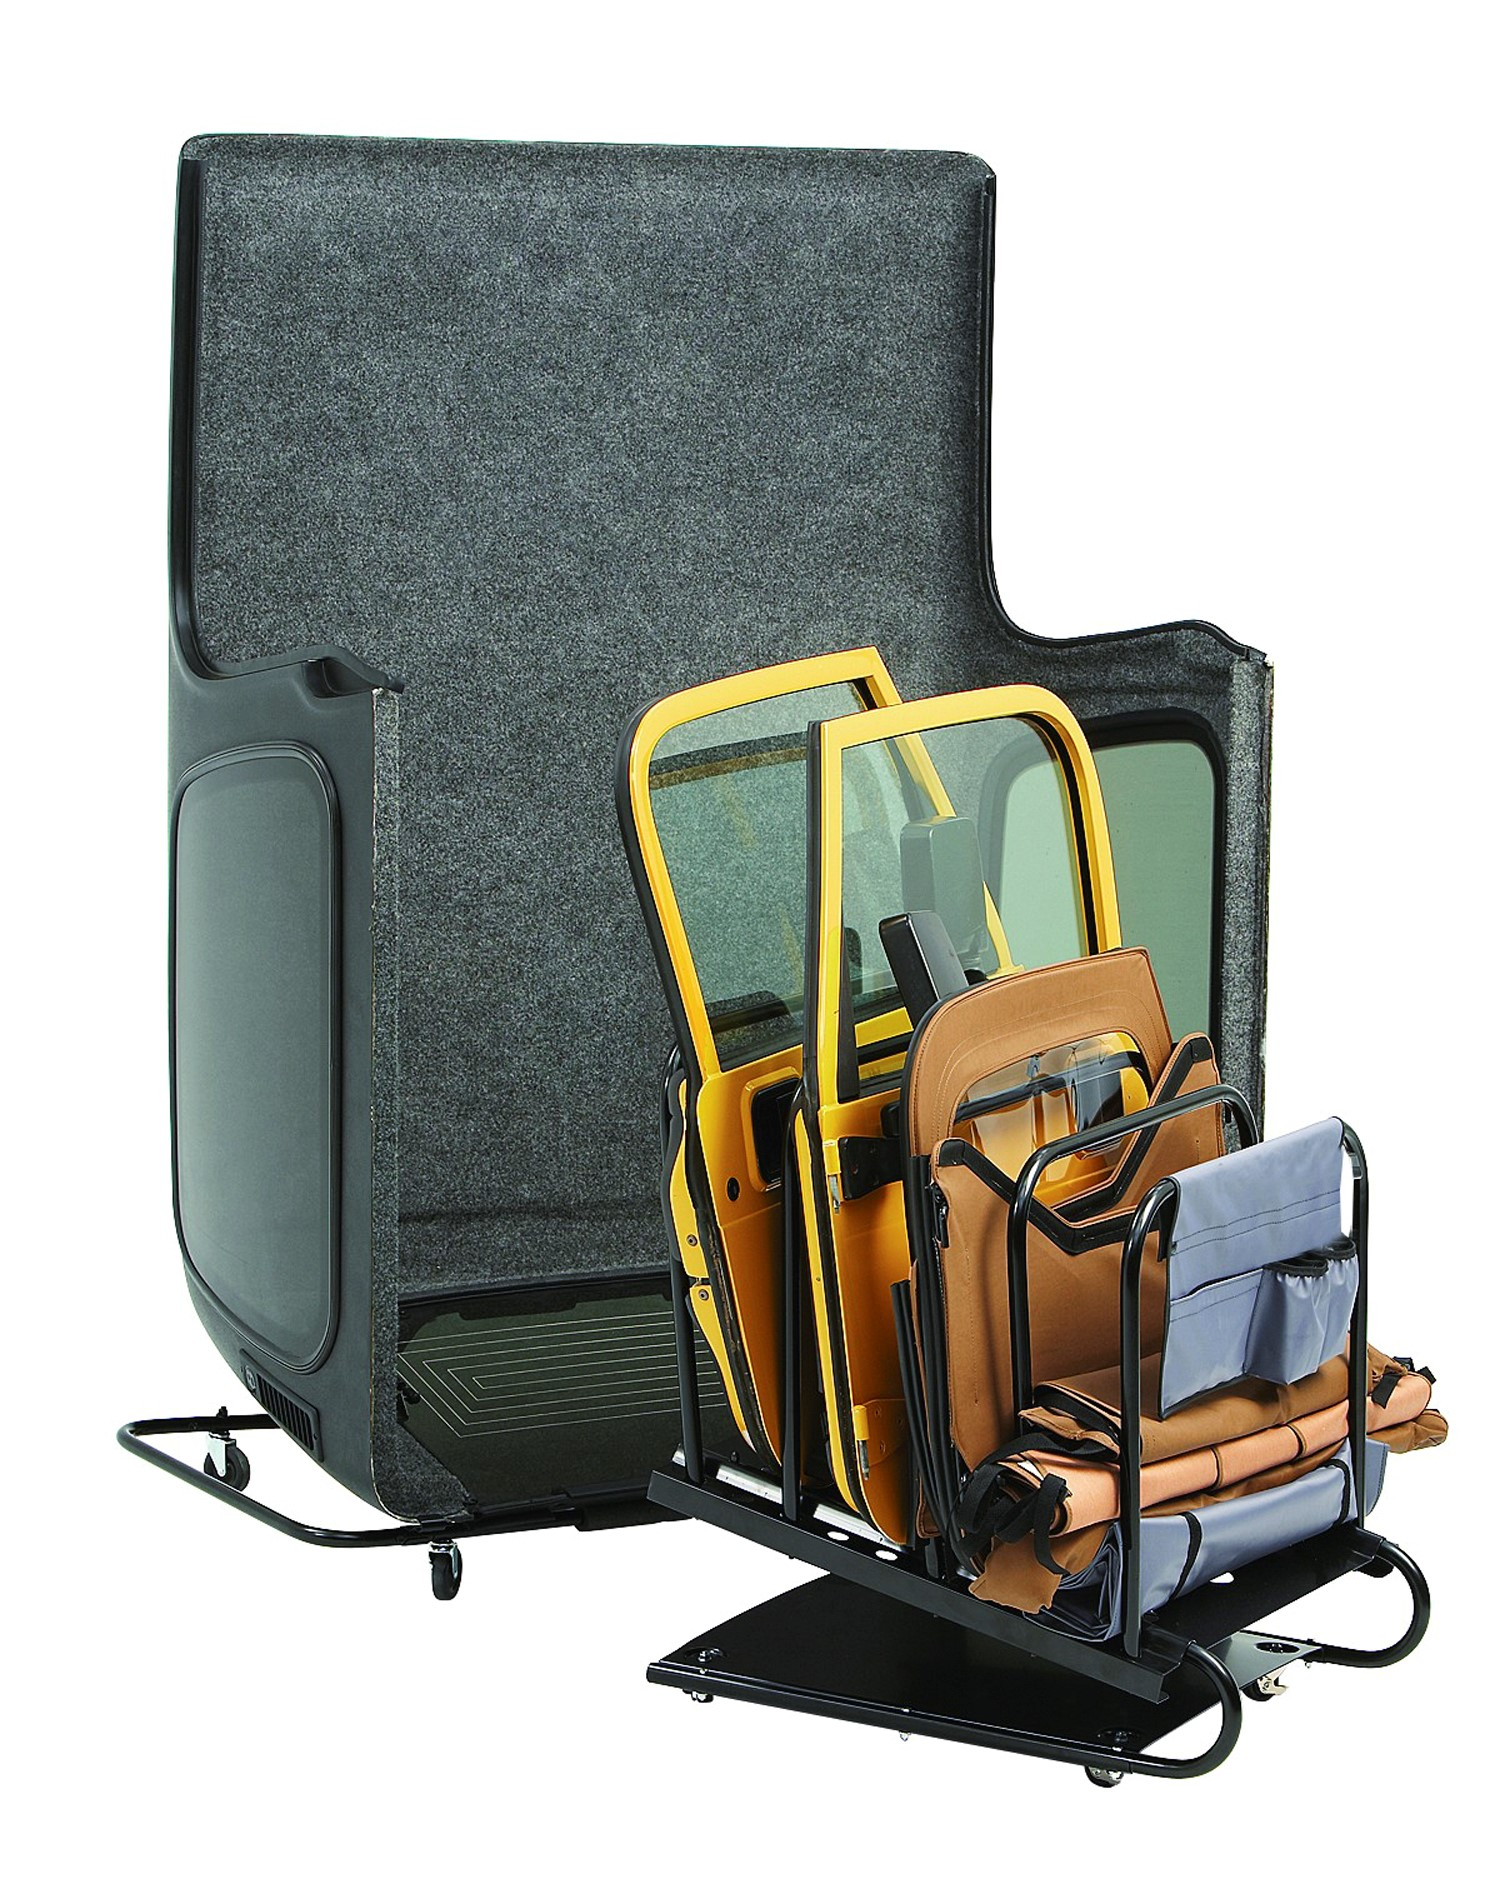 Jeep Hardtop Storage Carts from Bestop